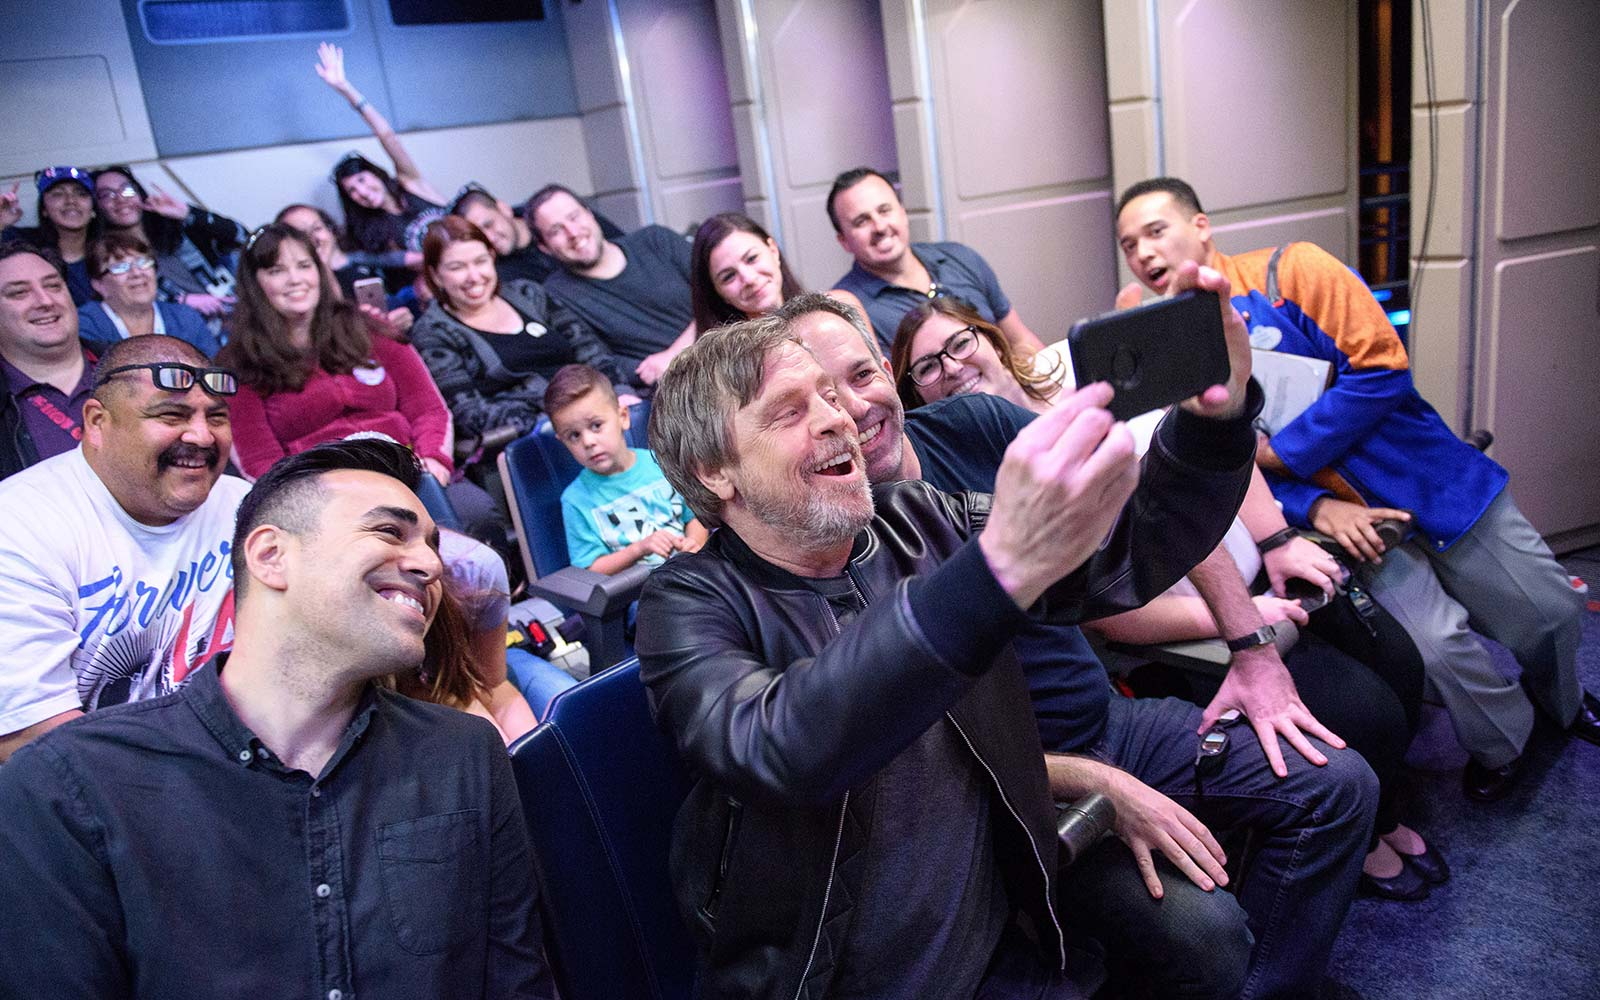 Mark Hamill Star Wars Star Tours Attraction Ride Disneyland Anaheim California